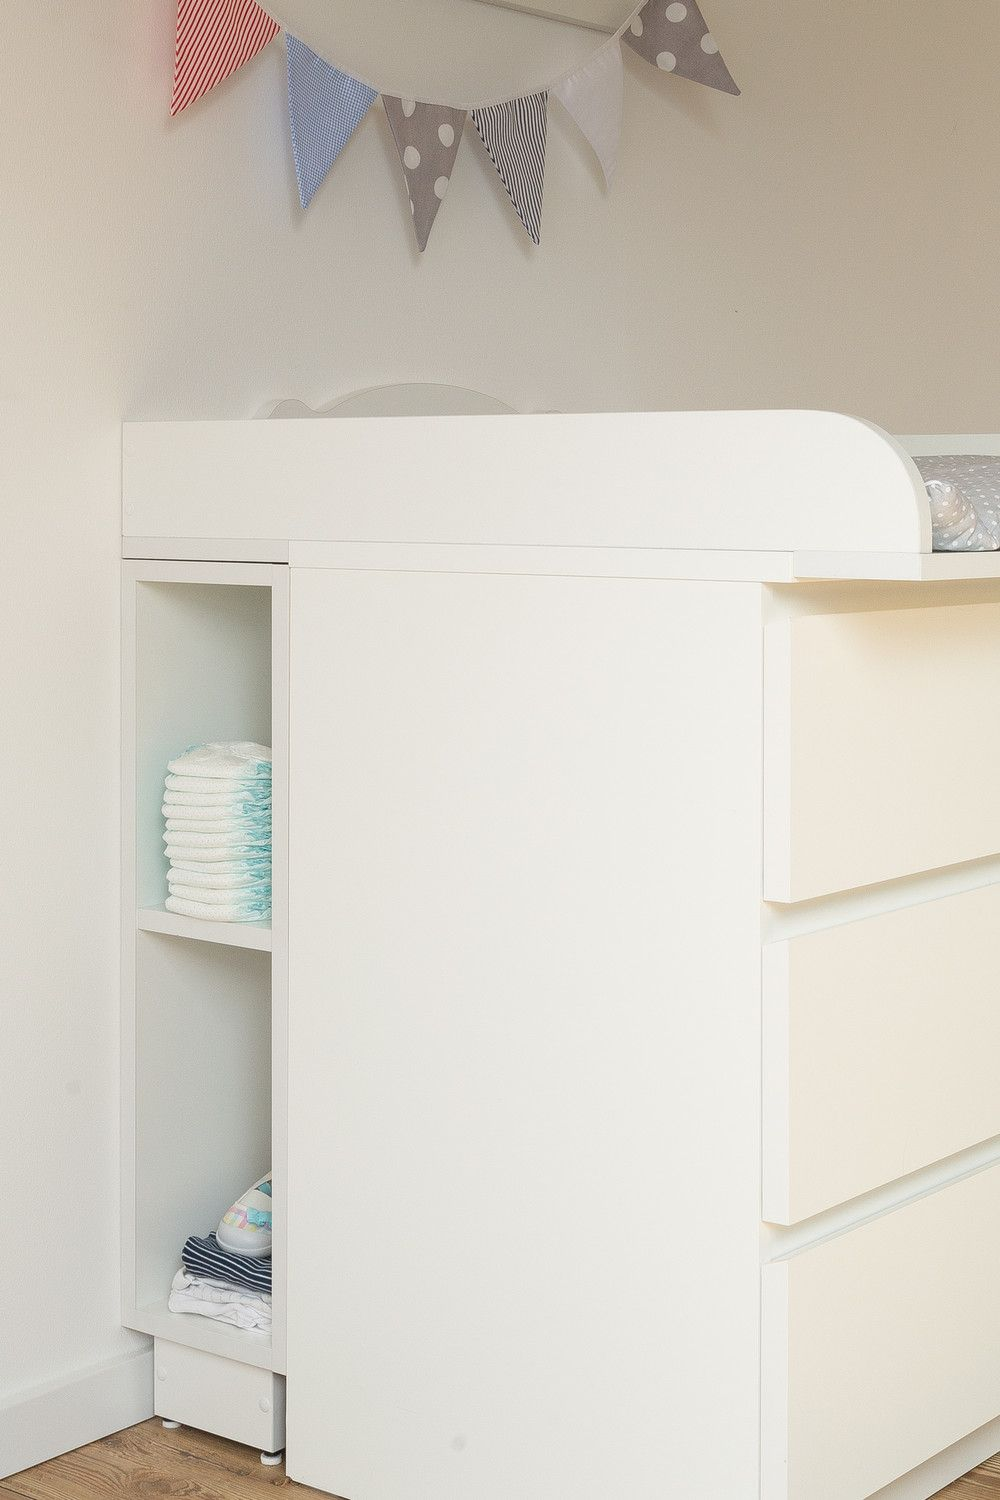 Wickeltischaufsatz Selber Bauen Children S Storage Room Shelf For Changing Table White Suitable